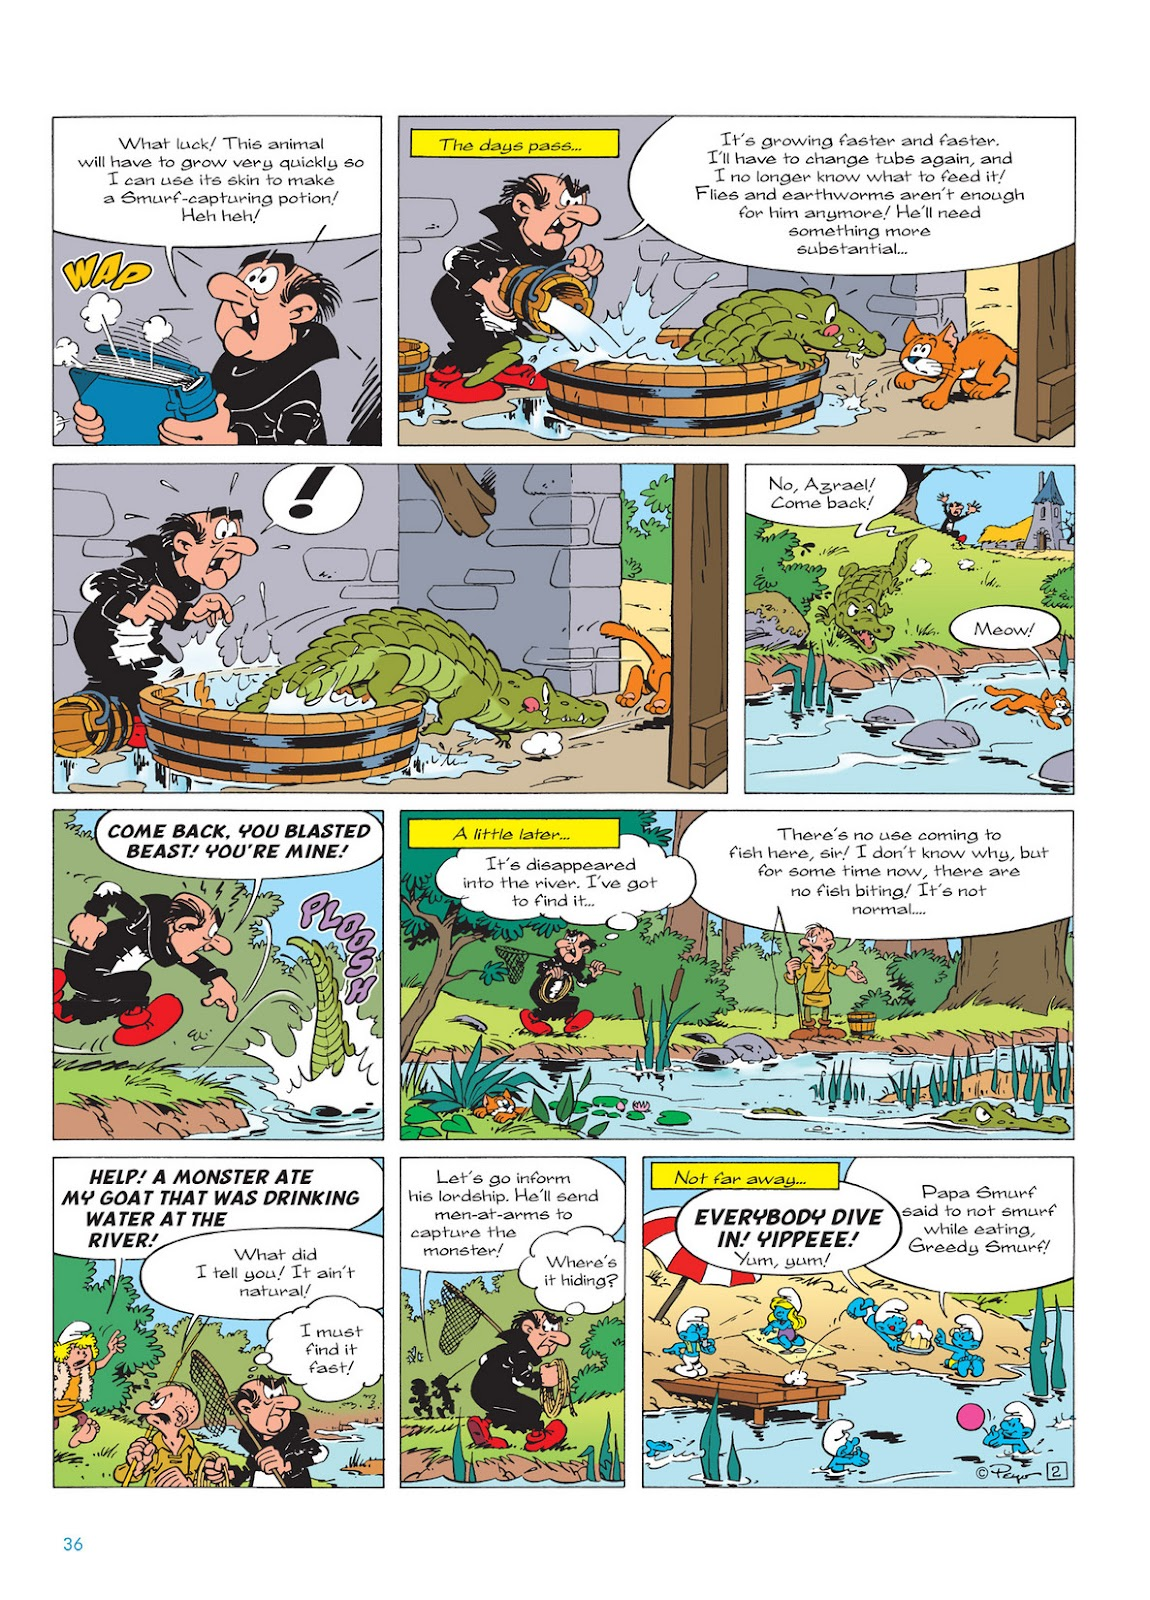 Read online The Smurfs comic -  Issue #13 - 36